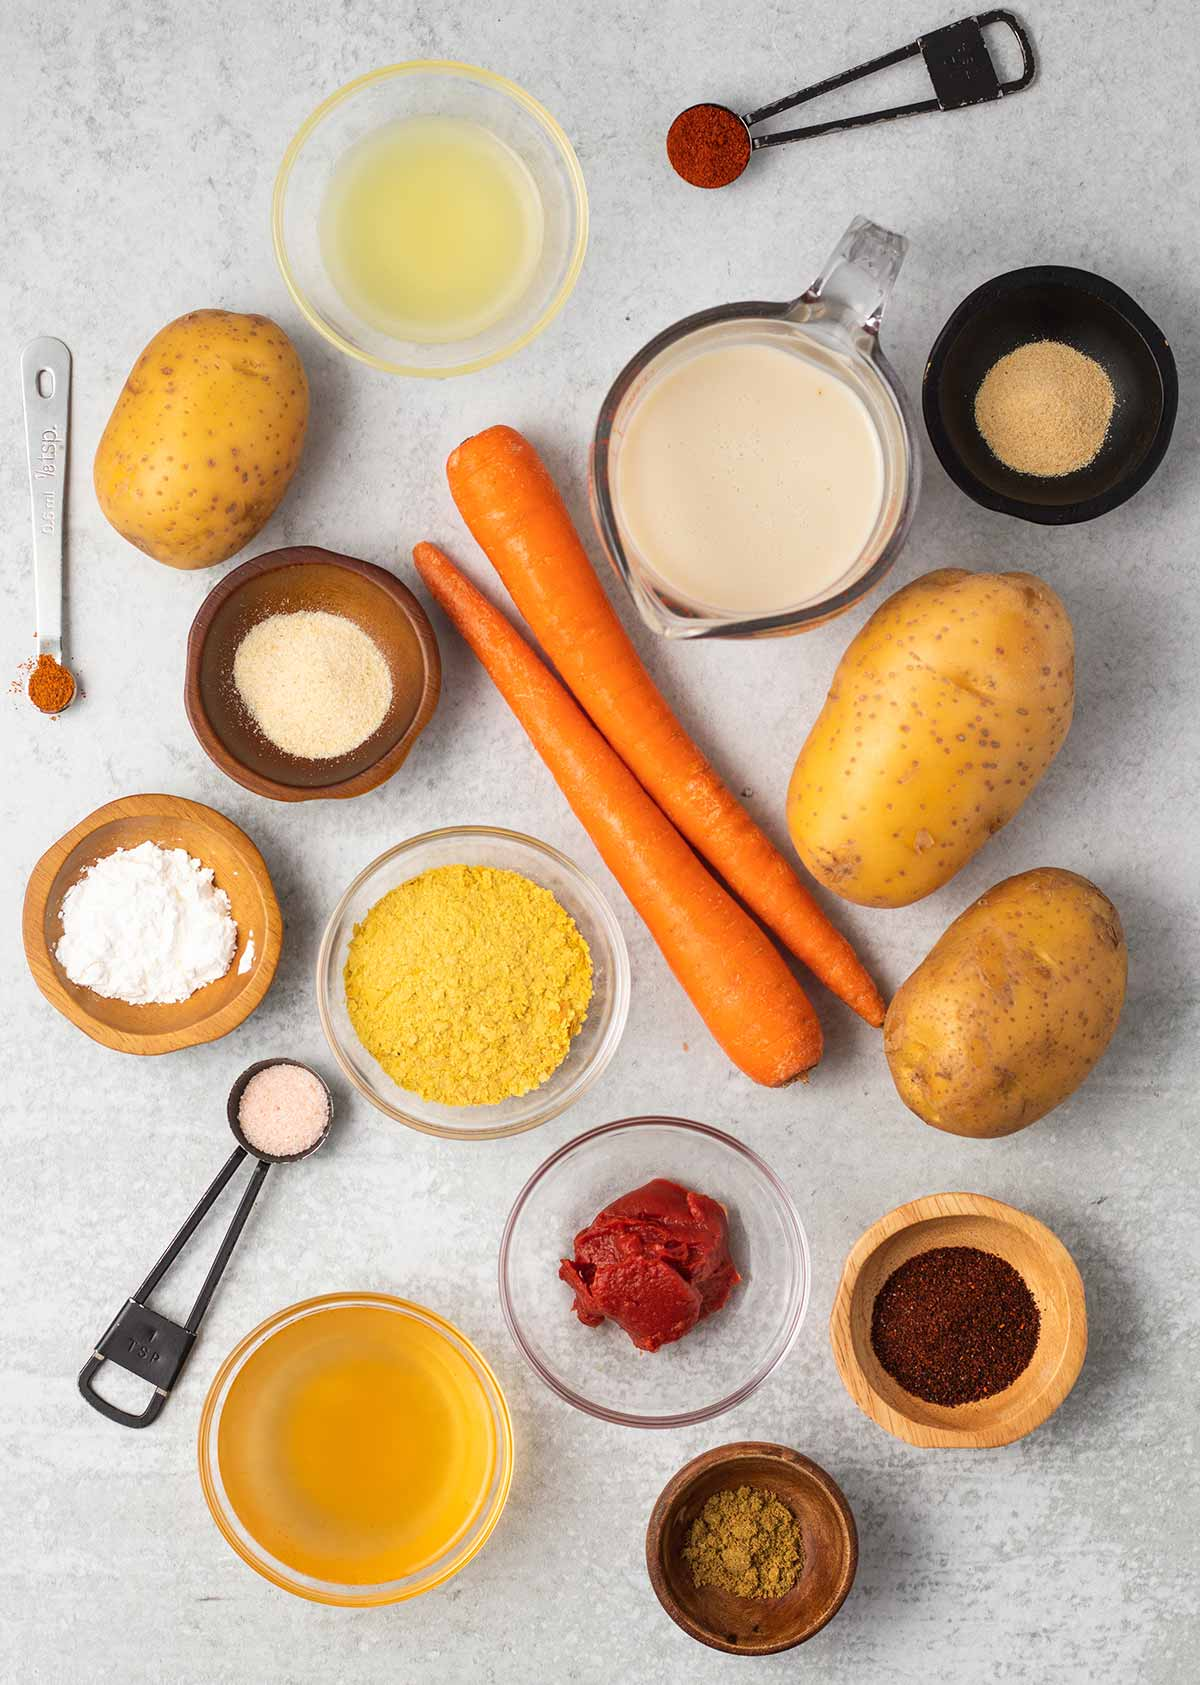 Ingredients for vega nacho cheese sauce, some are in small bowls and measuring spoons: potatoes, carrots, garlic powder, onion powder, lime juice, cayenne pepper, chili powder, cornstarch, nutritional yeast, salt, tomato paste, and cumin.